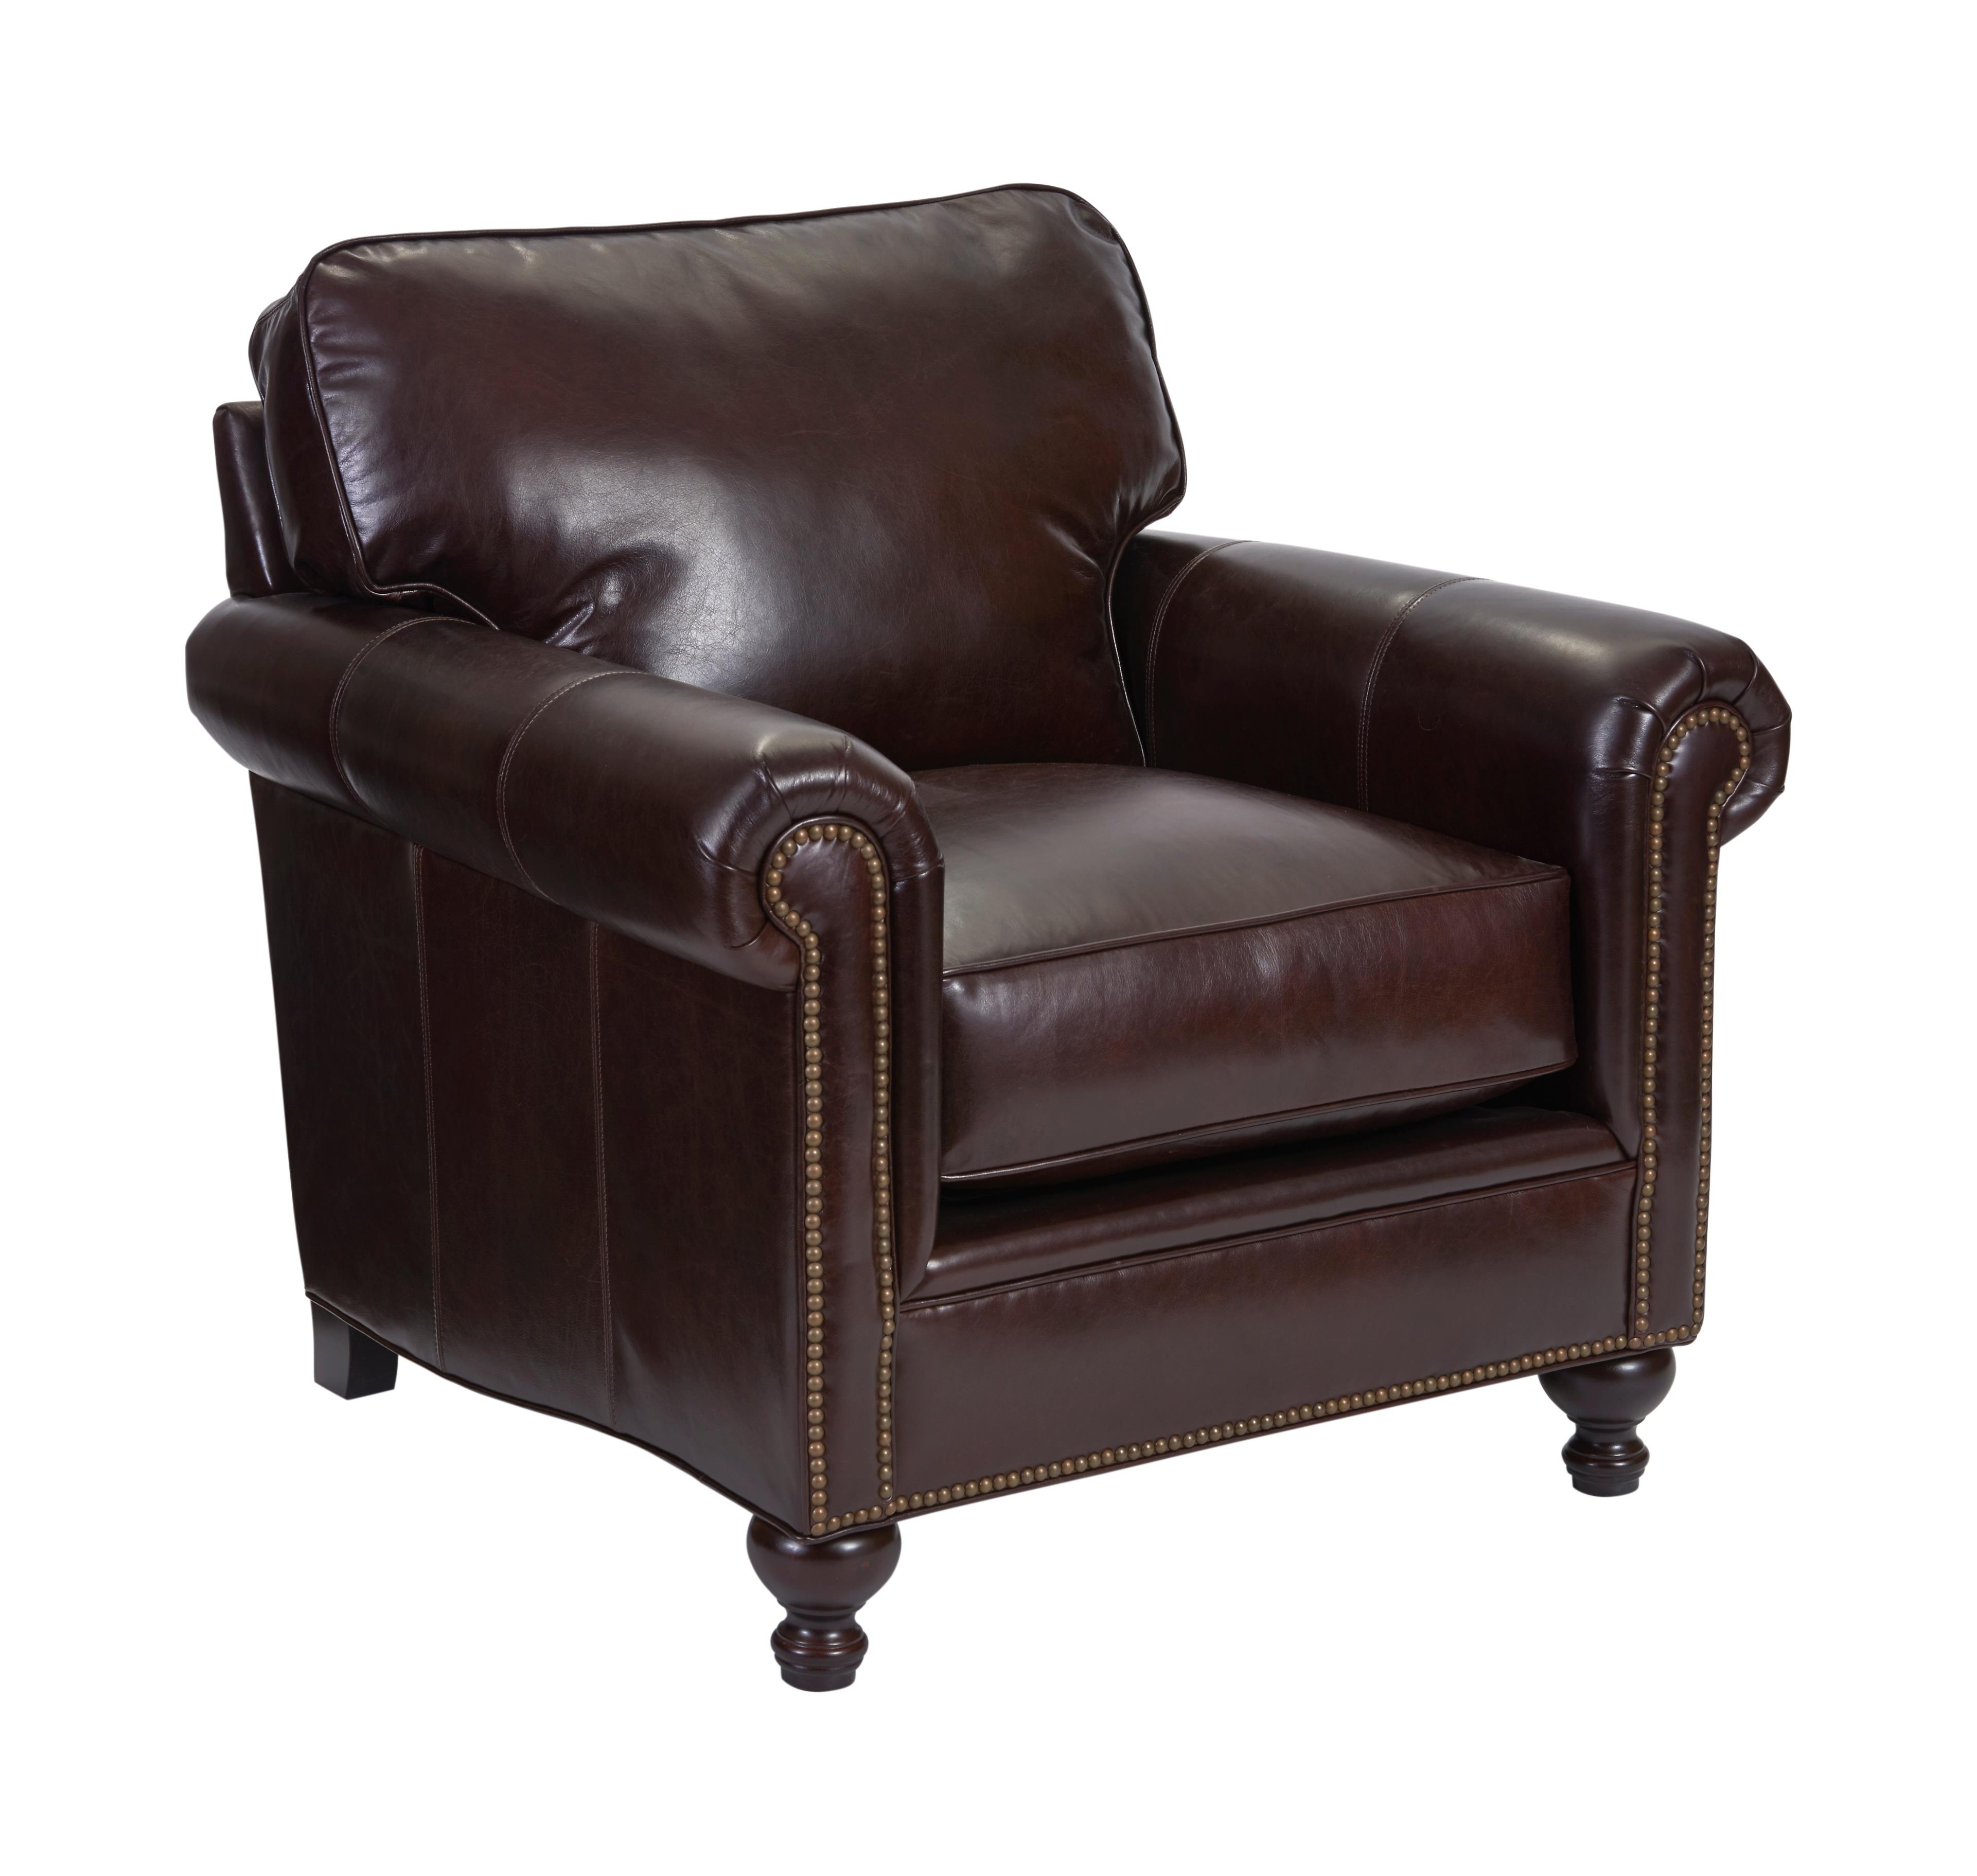 Broyhill Furniture Harrison Chair - Item Number: L6751-0-0015-89